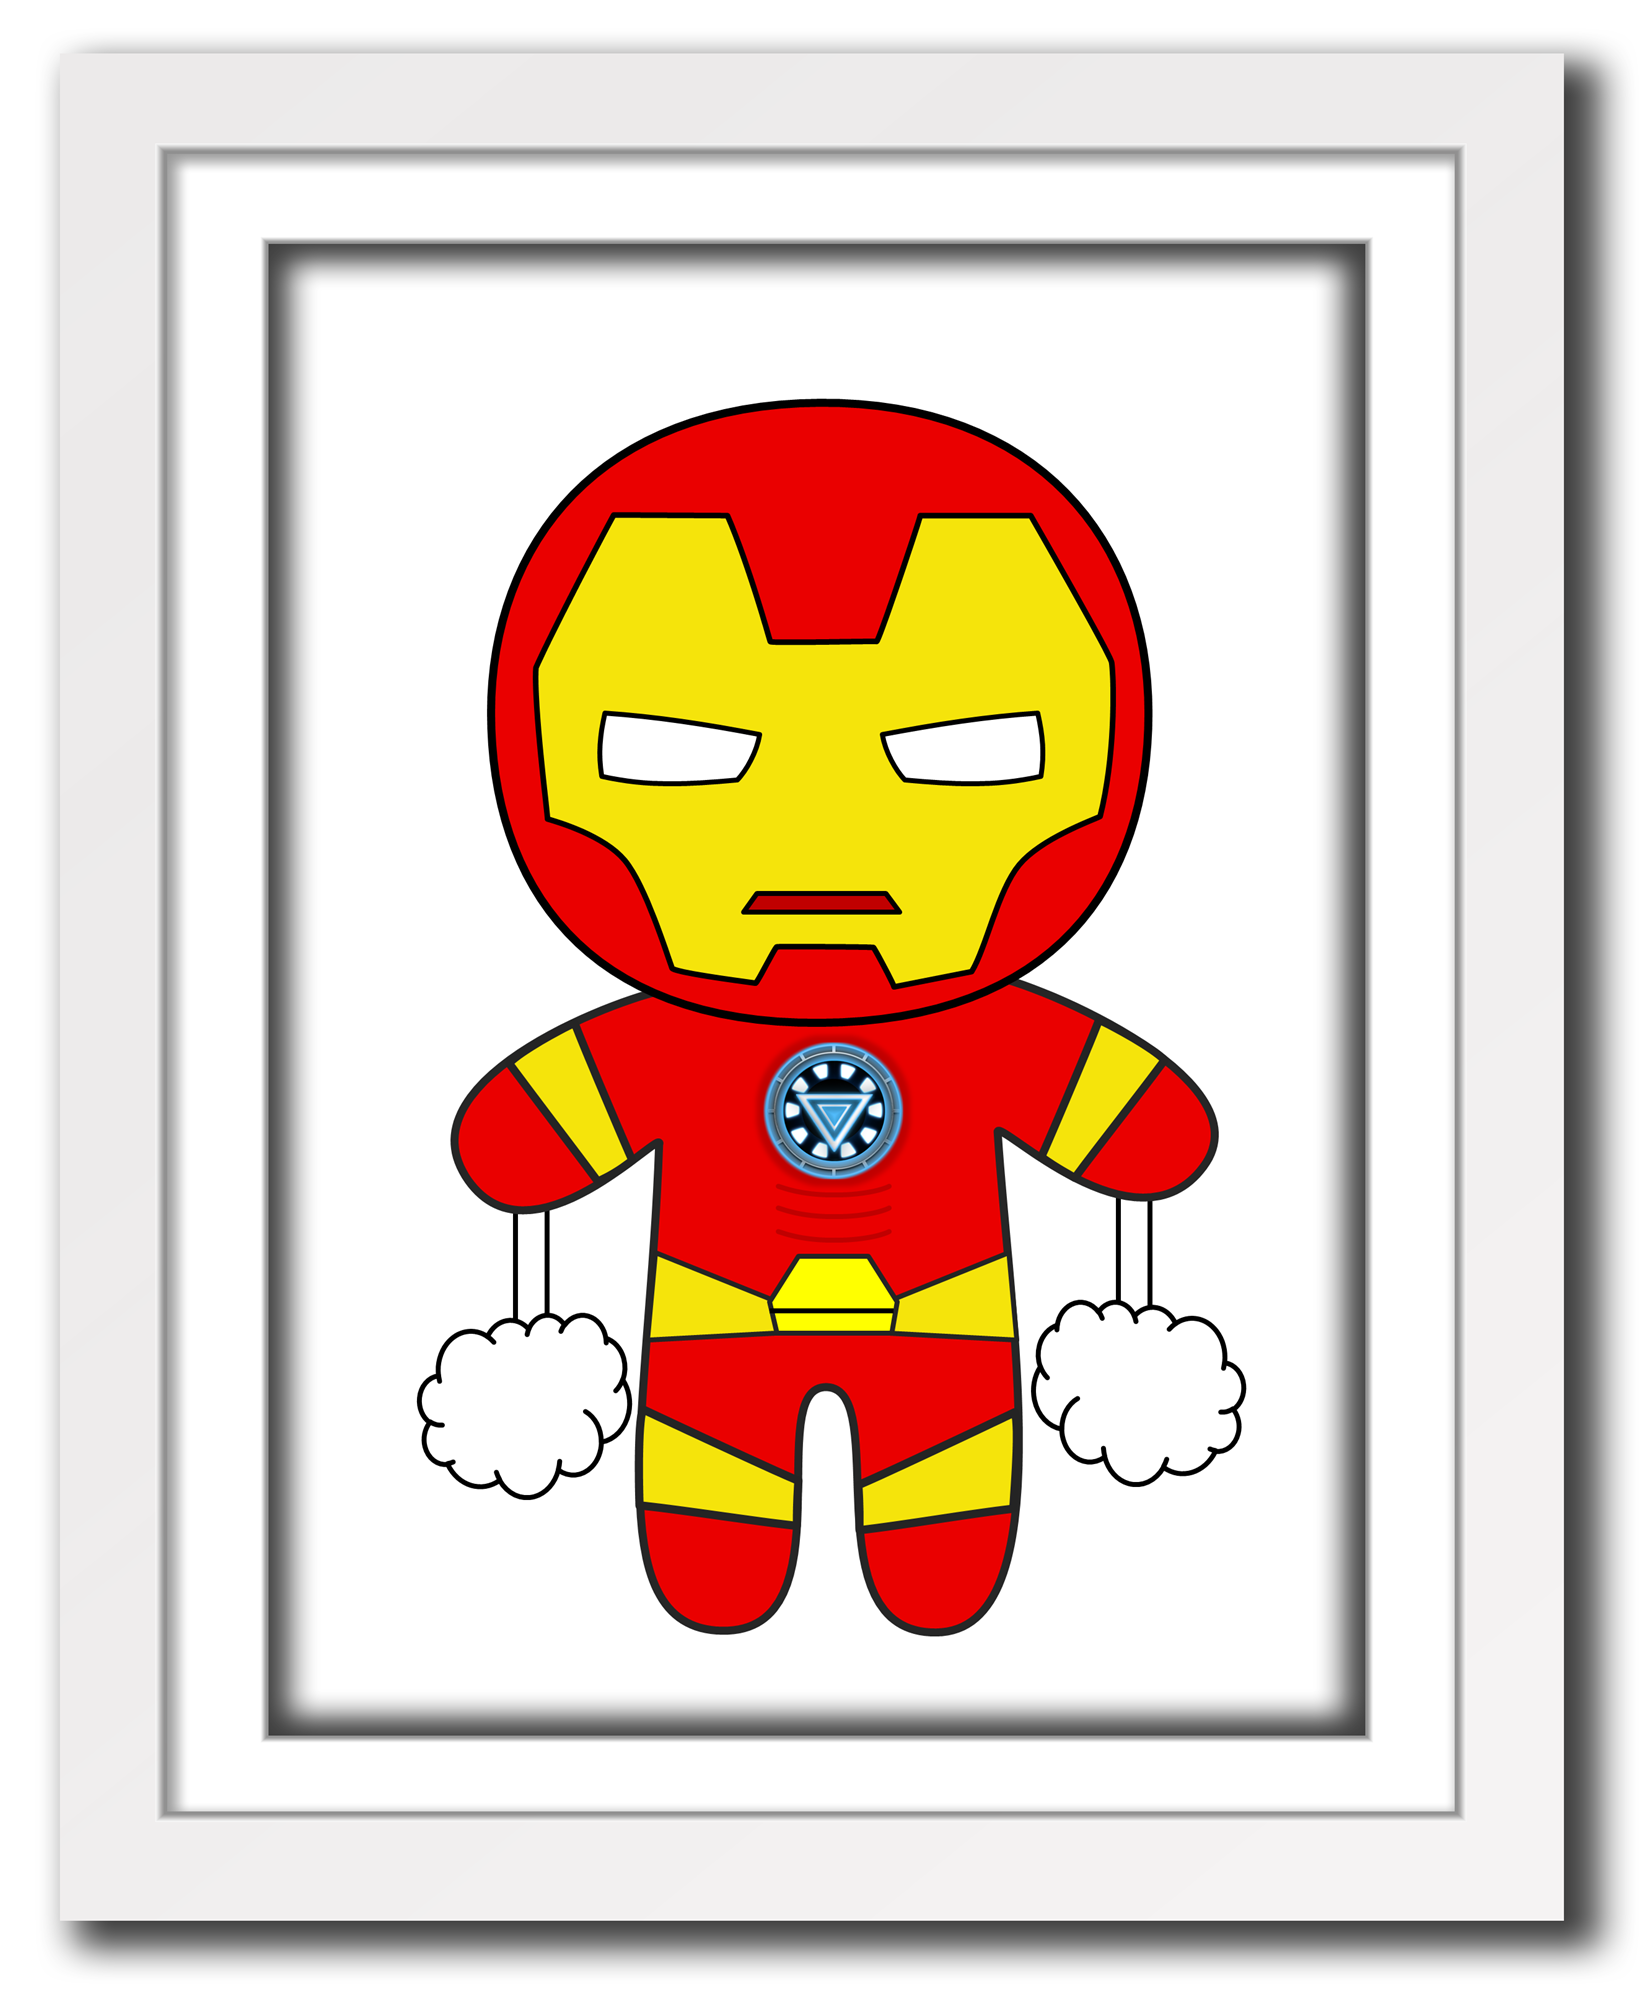 Superhero Art For Little Boys: Superhero Ironman Print For Little Boys Room,cute Little